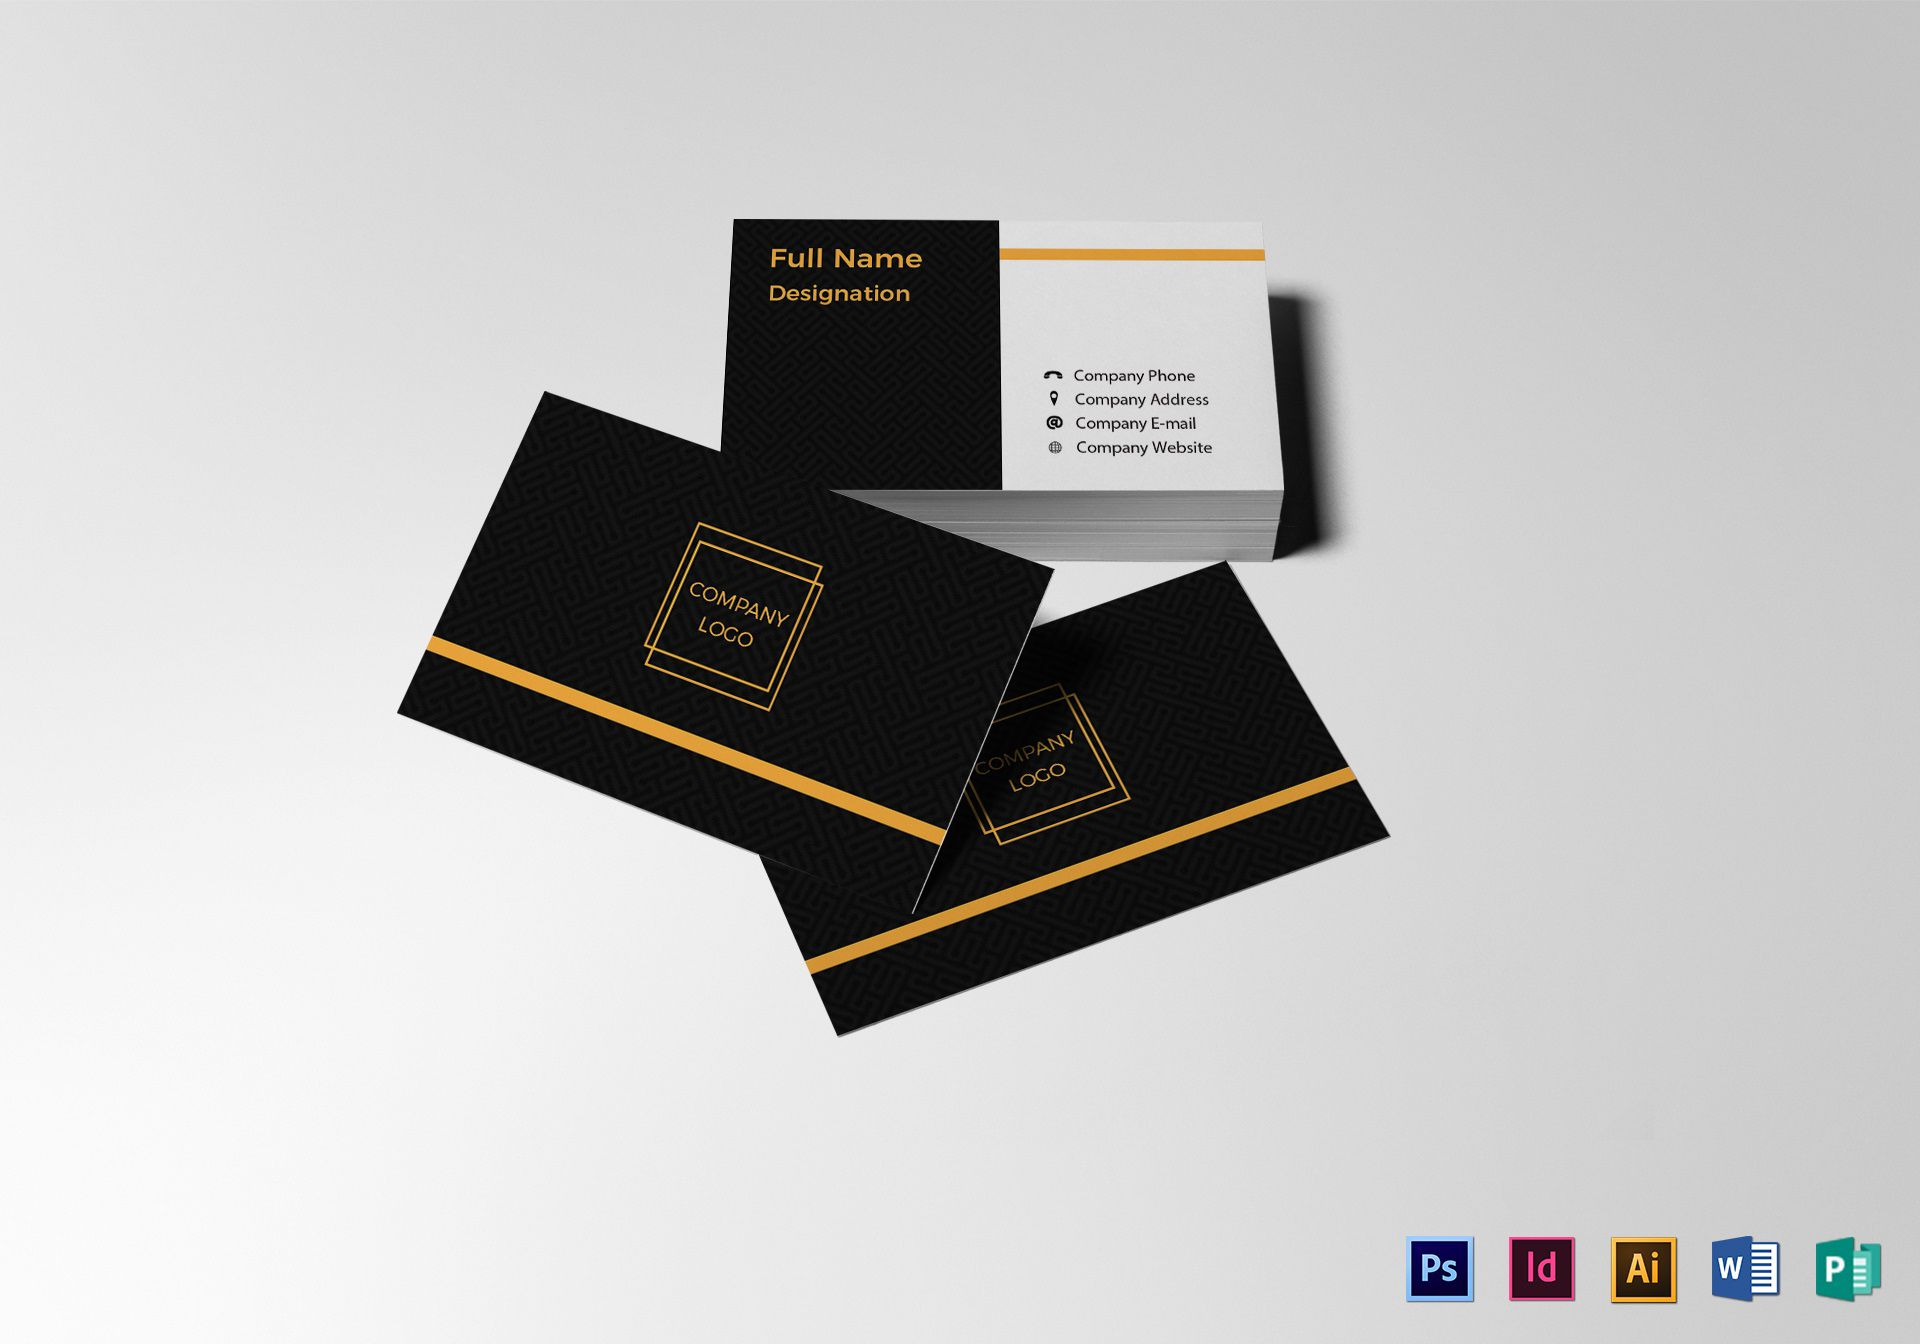 004 Simple Blank Busines Card Template Photoshop Inspiration  Free Download PsdFull